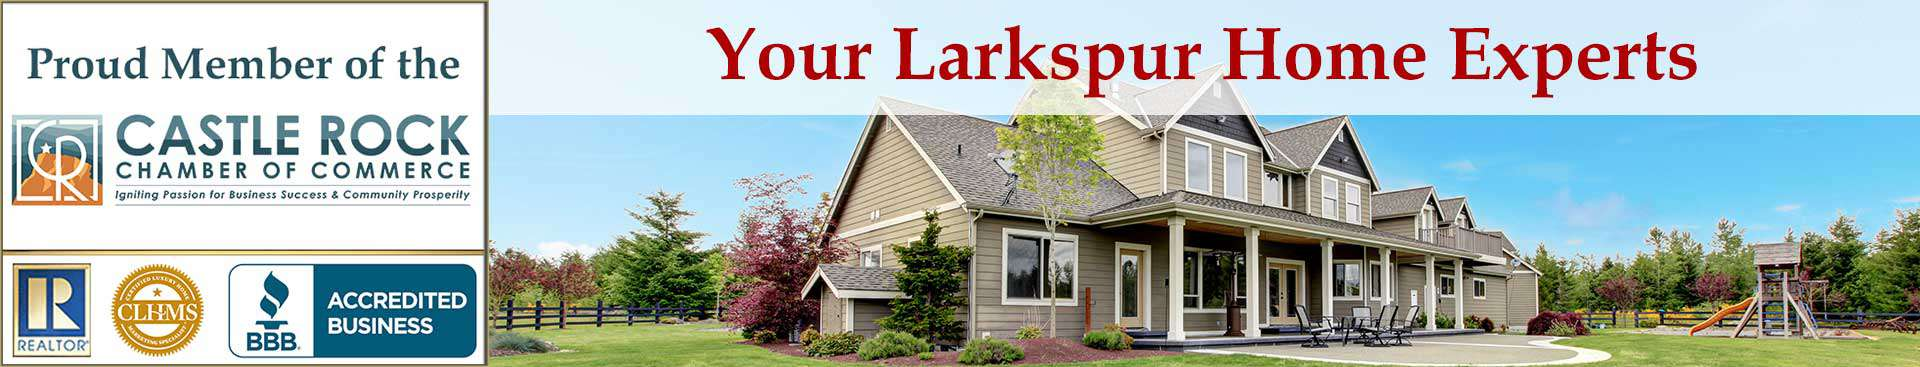 Larkspur CO Organizational Banner